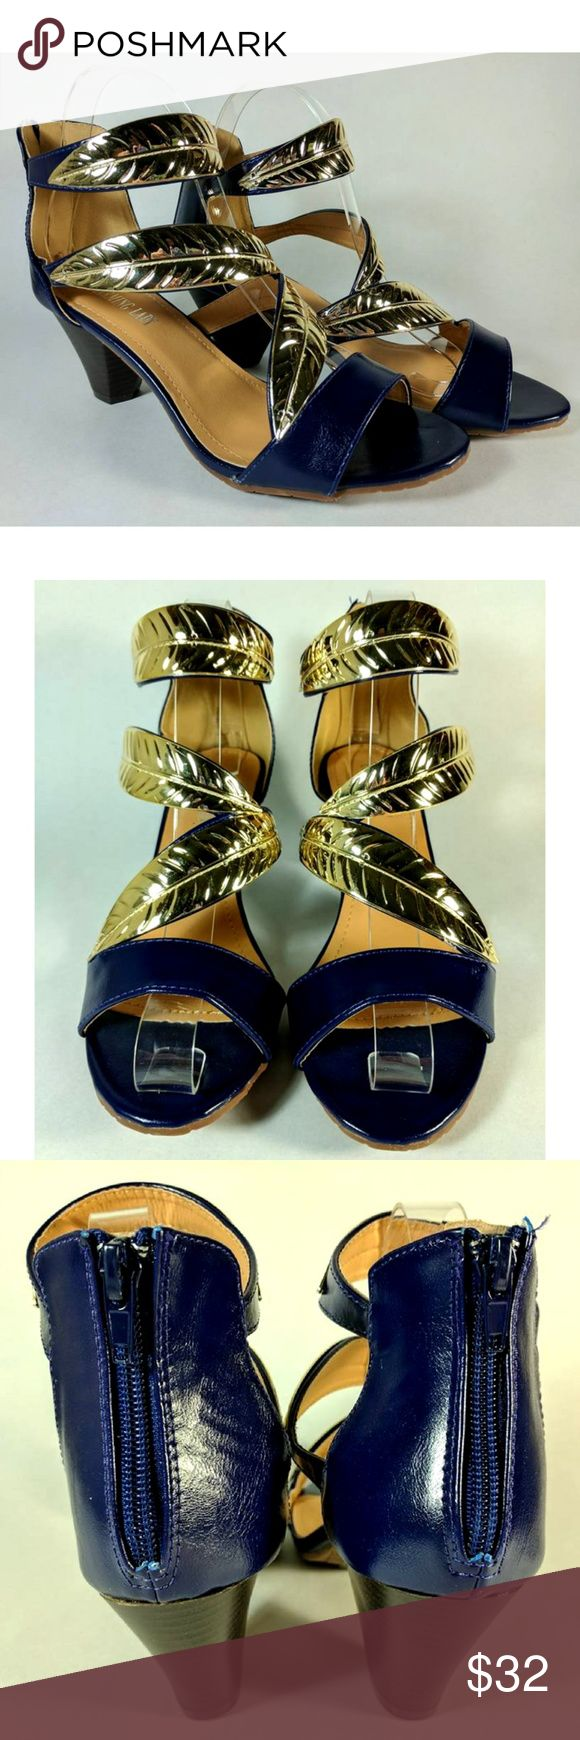 "Charming Lady Blue and Gold Leaf Shoes Size 9 Striking appearance! Kind of a bright navy blue. Leaves are thick plastic, gold color.  Heel measures 2-1/2"" high. Comes with replacement heel caps. Cushioned insole. Zipper back. New in box. Size 9M - Runs true to size. Charming Lady Shoes Heels"